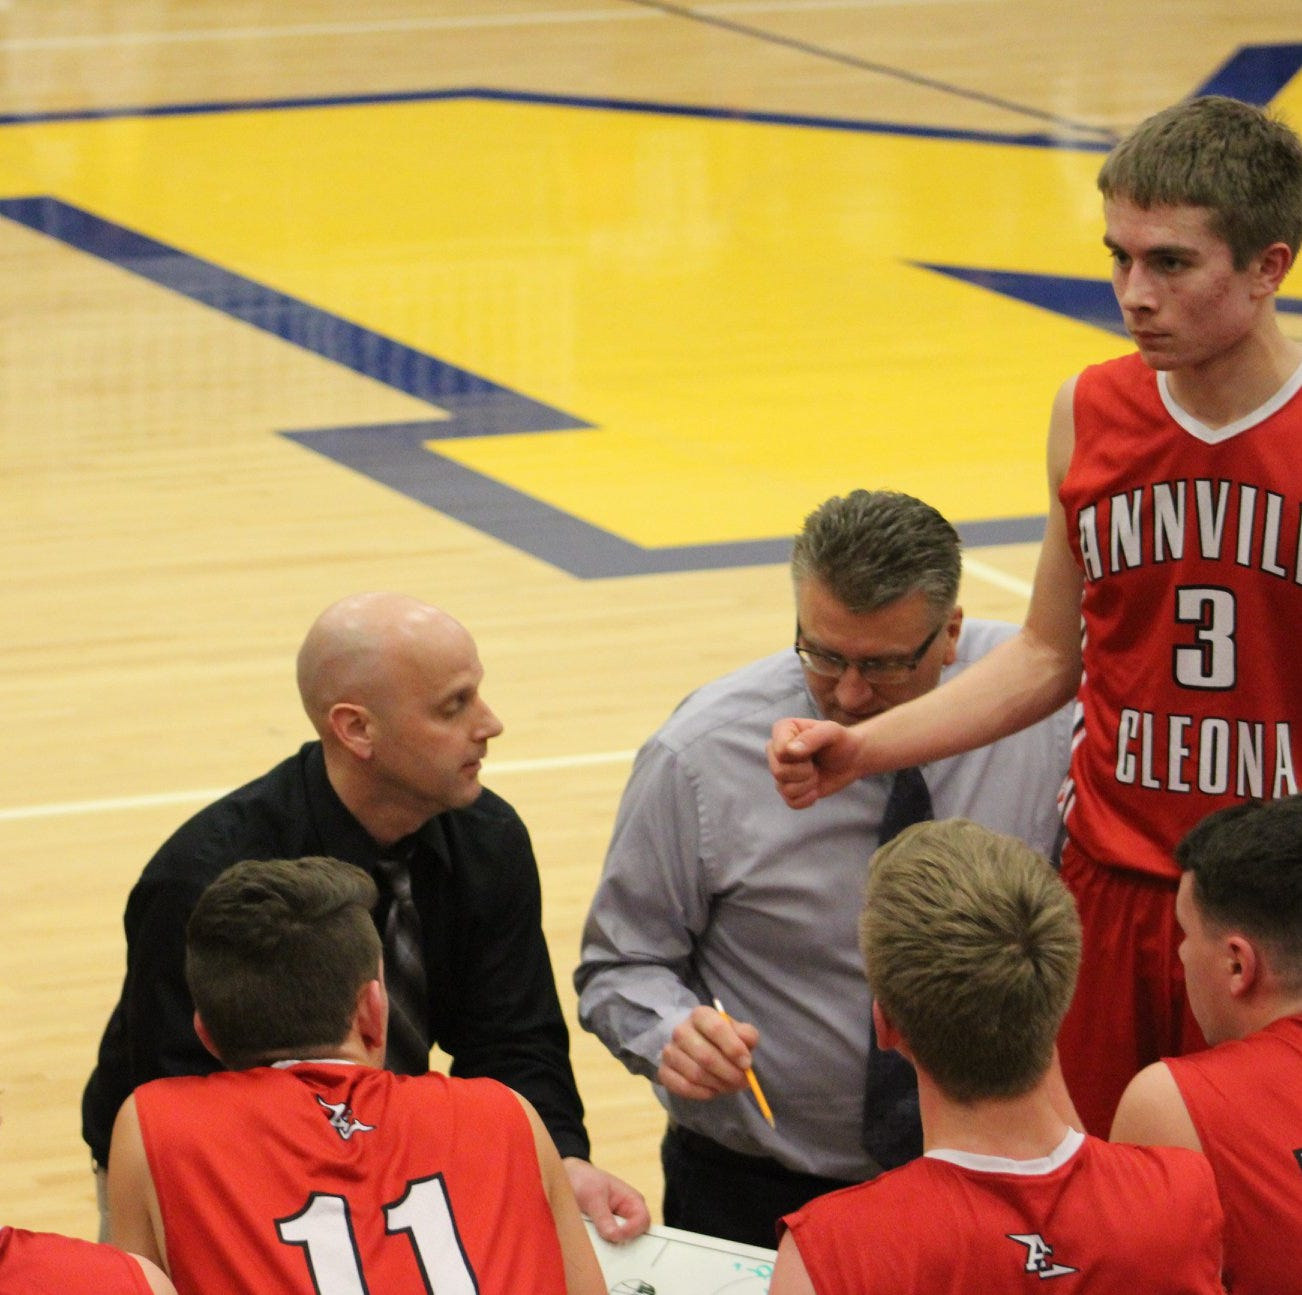 Annville-Cleona boys basketball excited about return to postseason